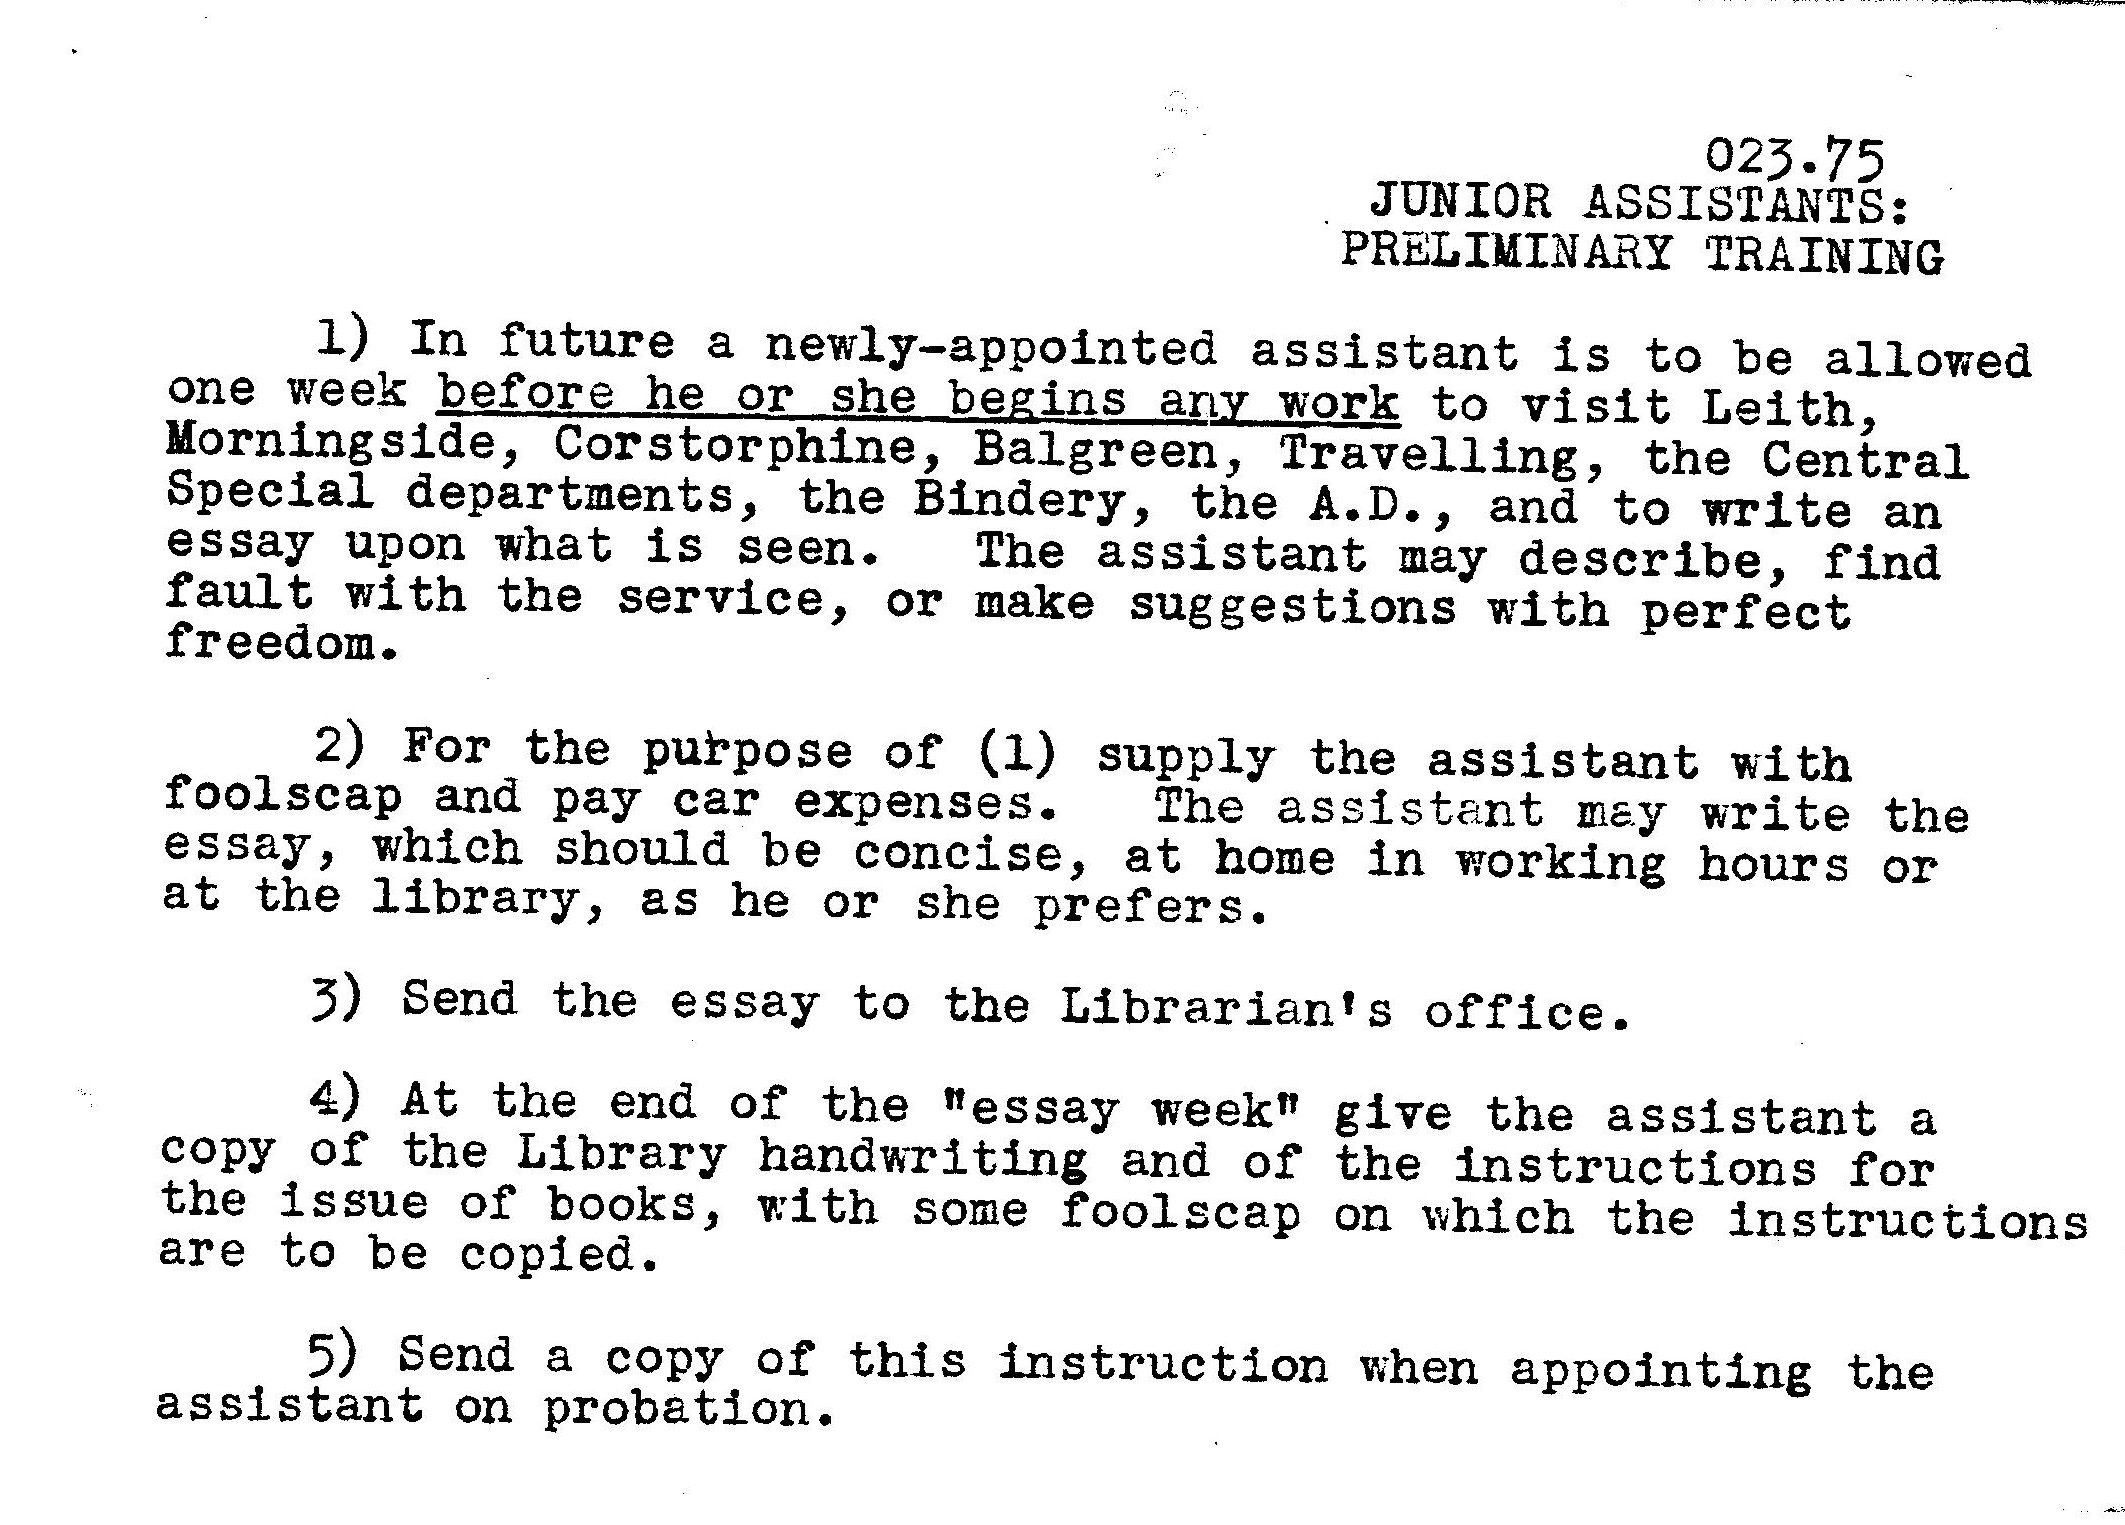 instructions for library staff a trip back in time tales of and woe betide you if your essay was written in a slovenly hand